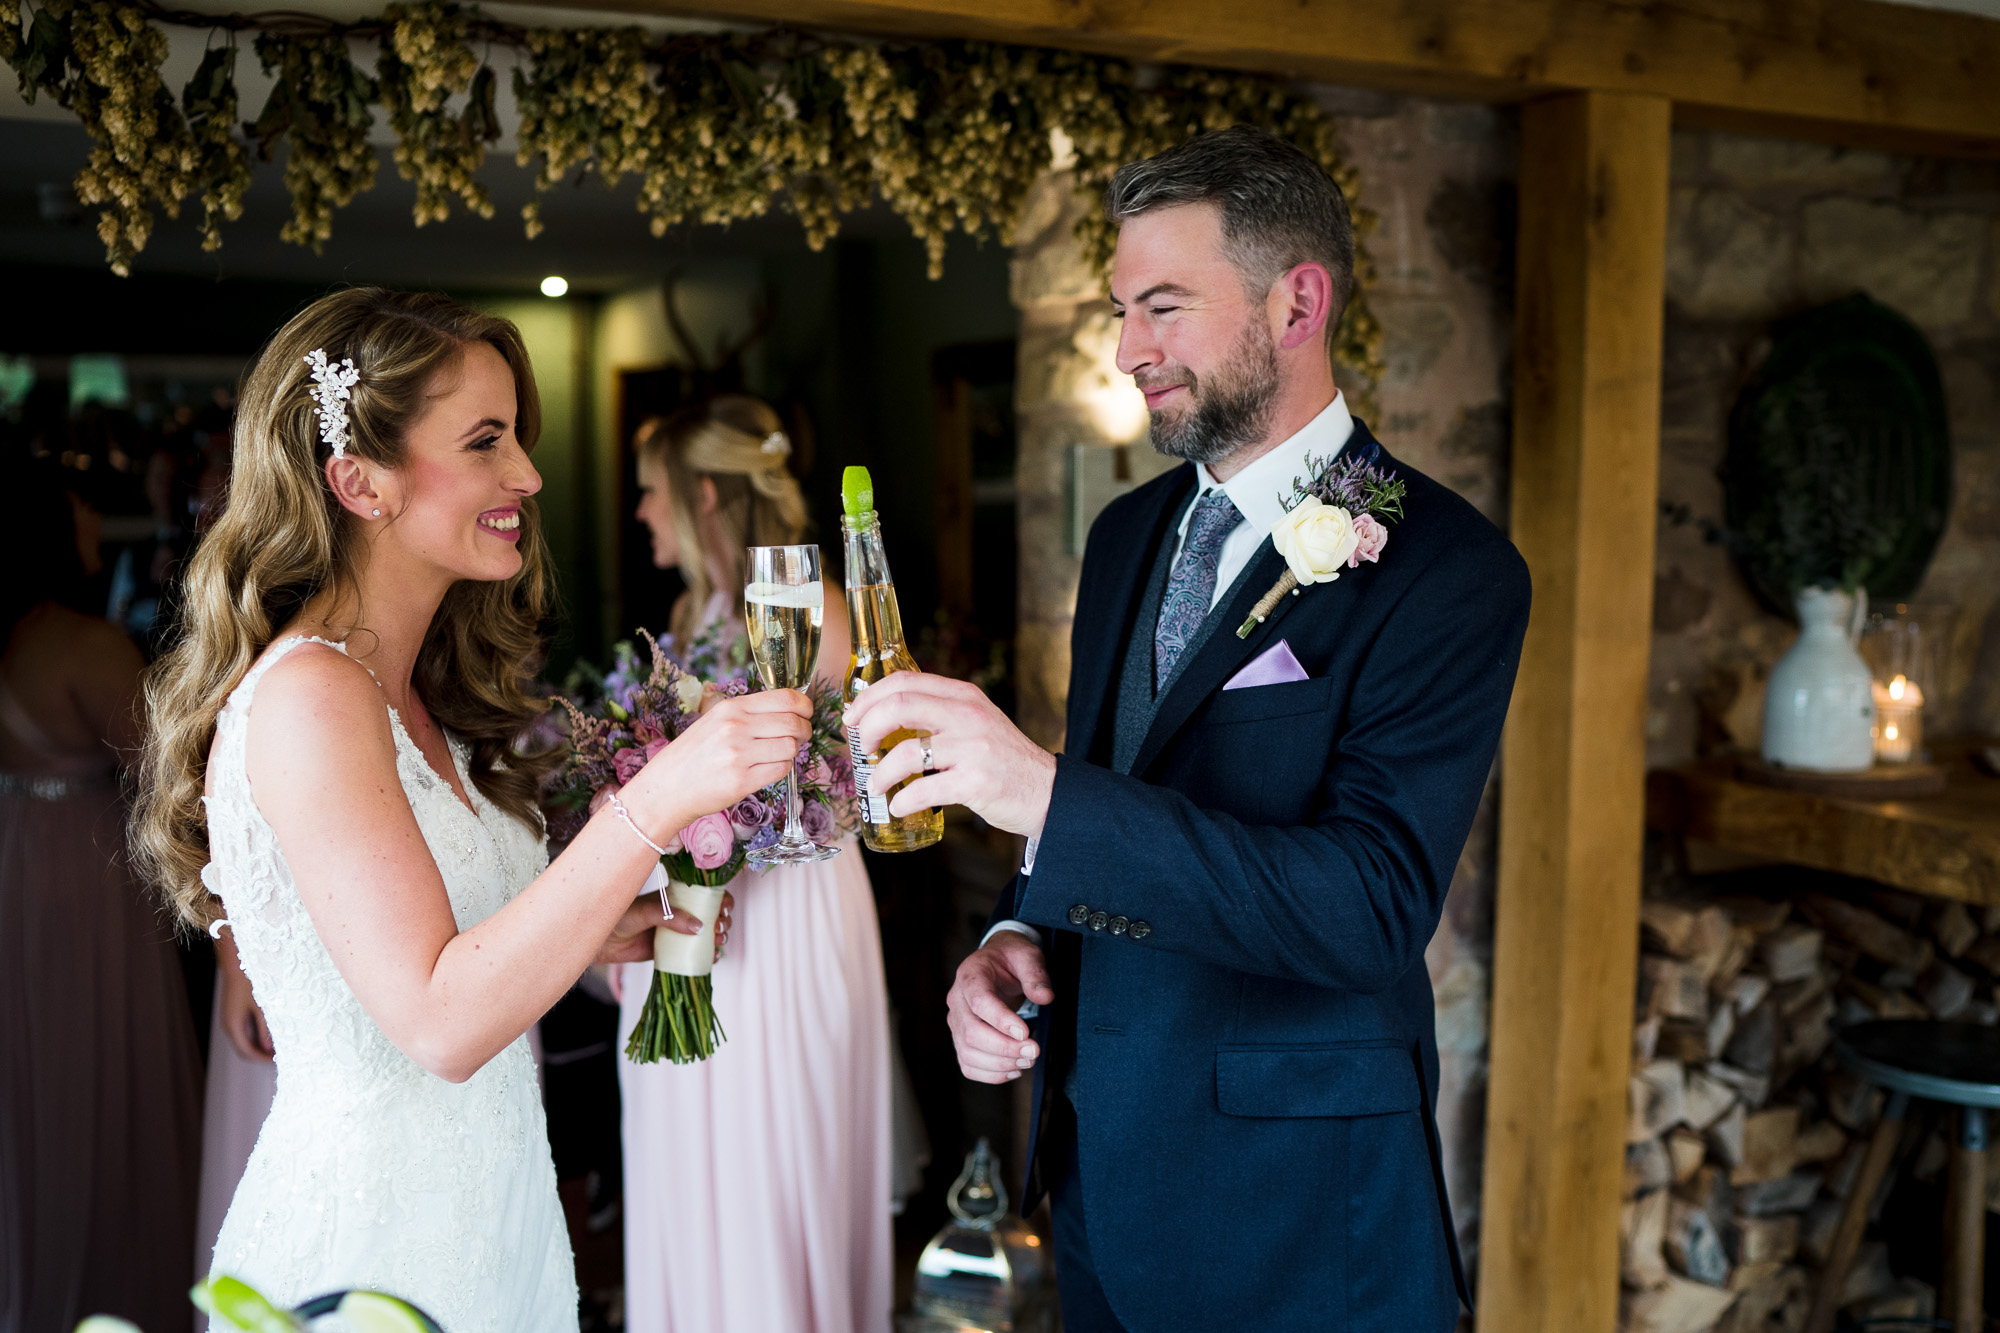 Tower Hill BArn Wedding Photographer based in north west england (25 of 35).jpg